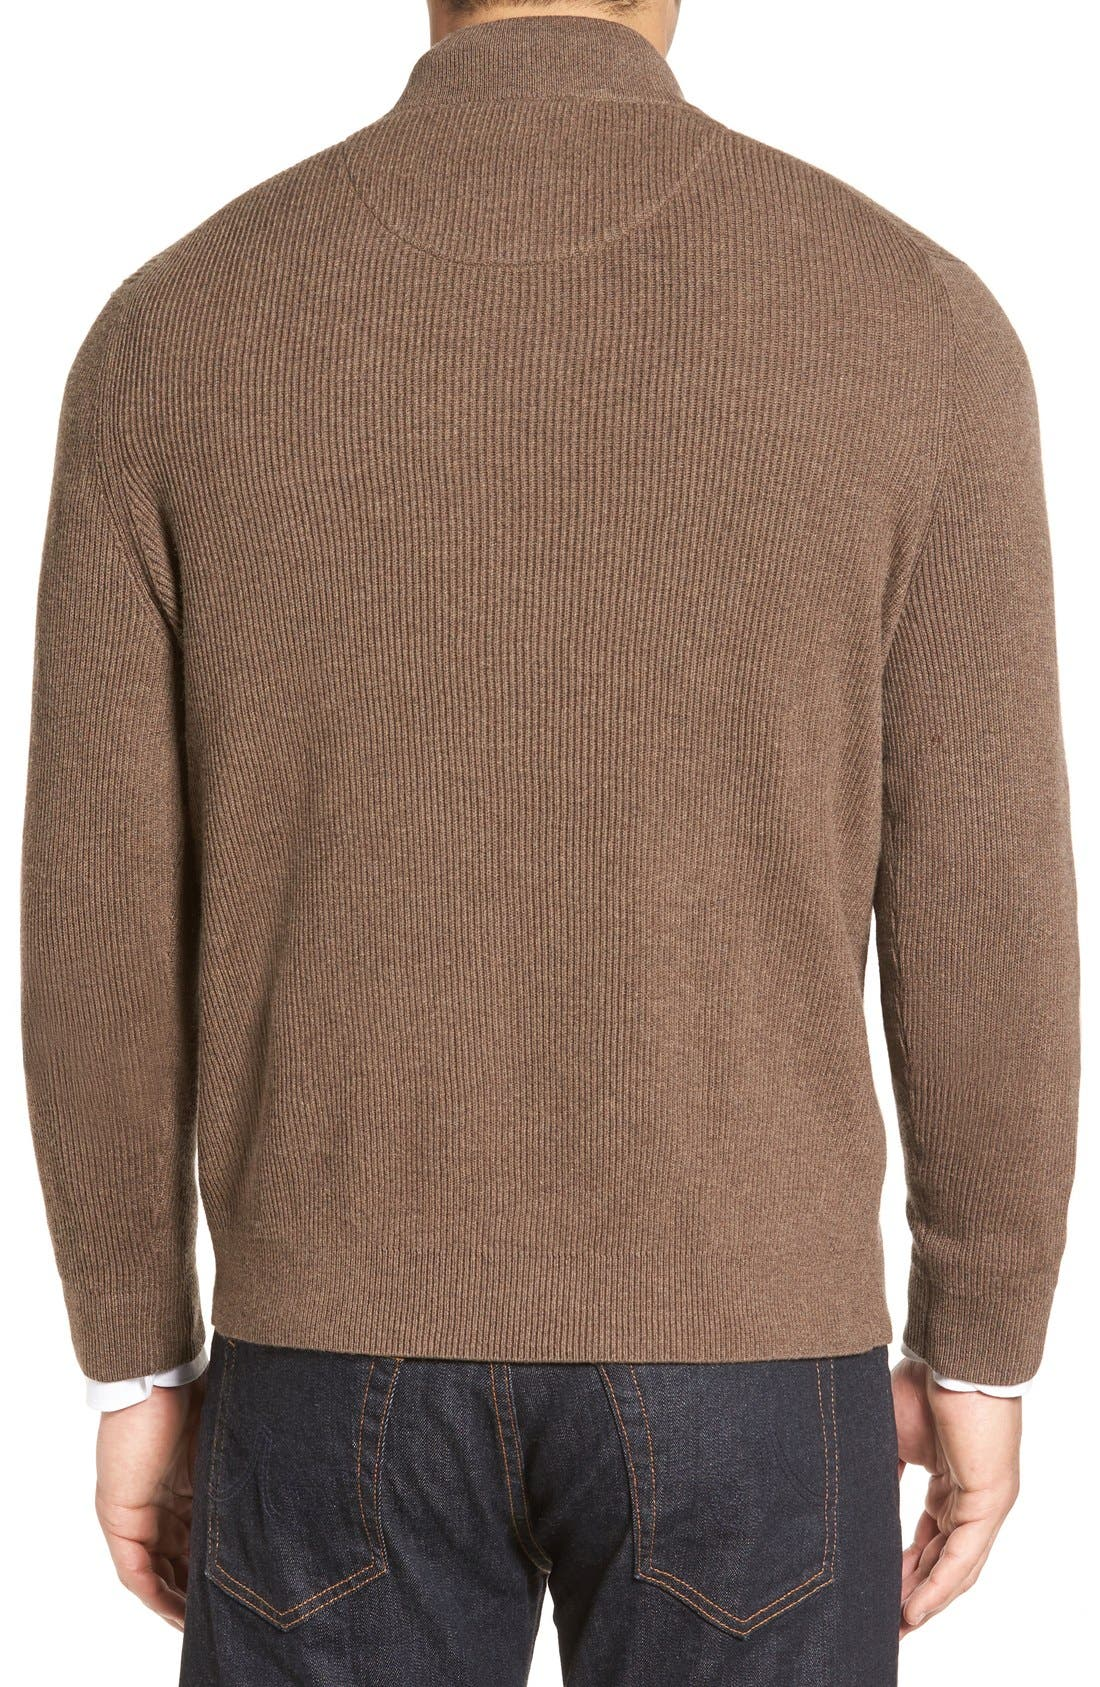 Alternate Image 2  - Nordstrom Men's Shop Cotton & Cashmere Rib Knit Sweater (Regular & Tall)